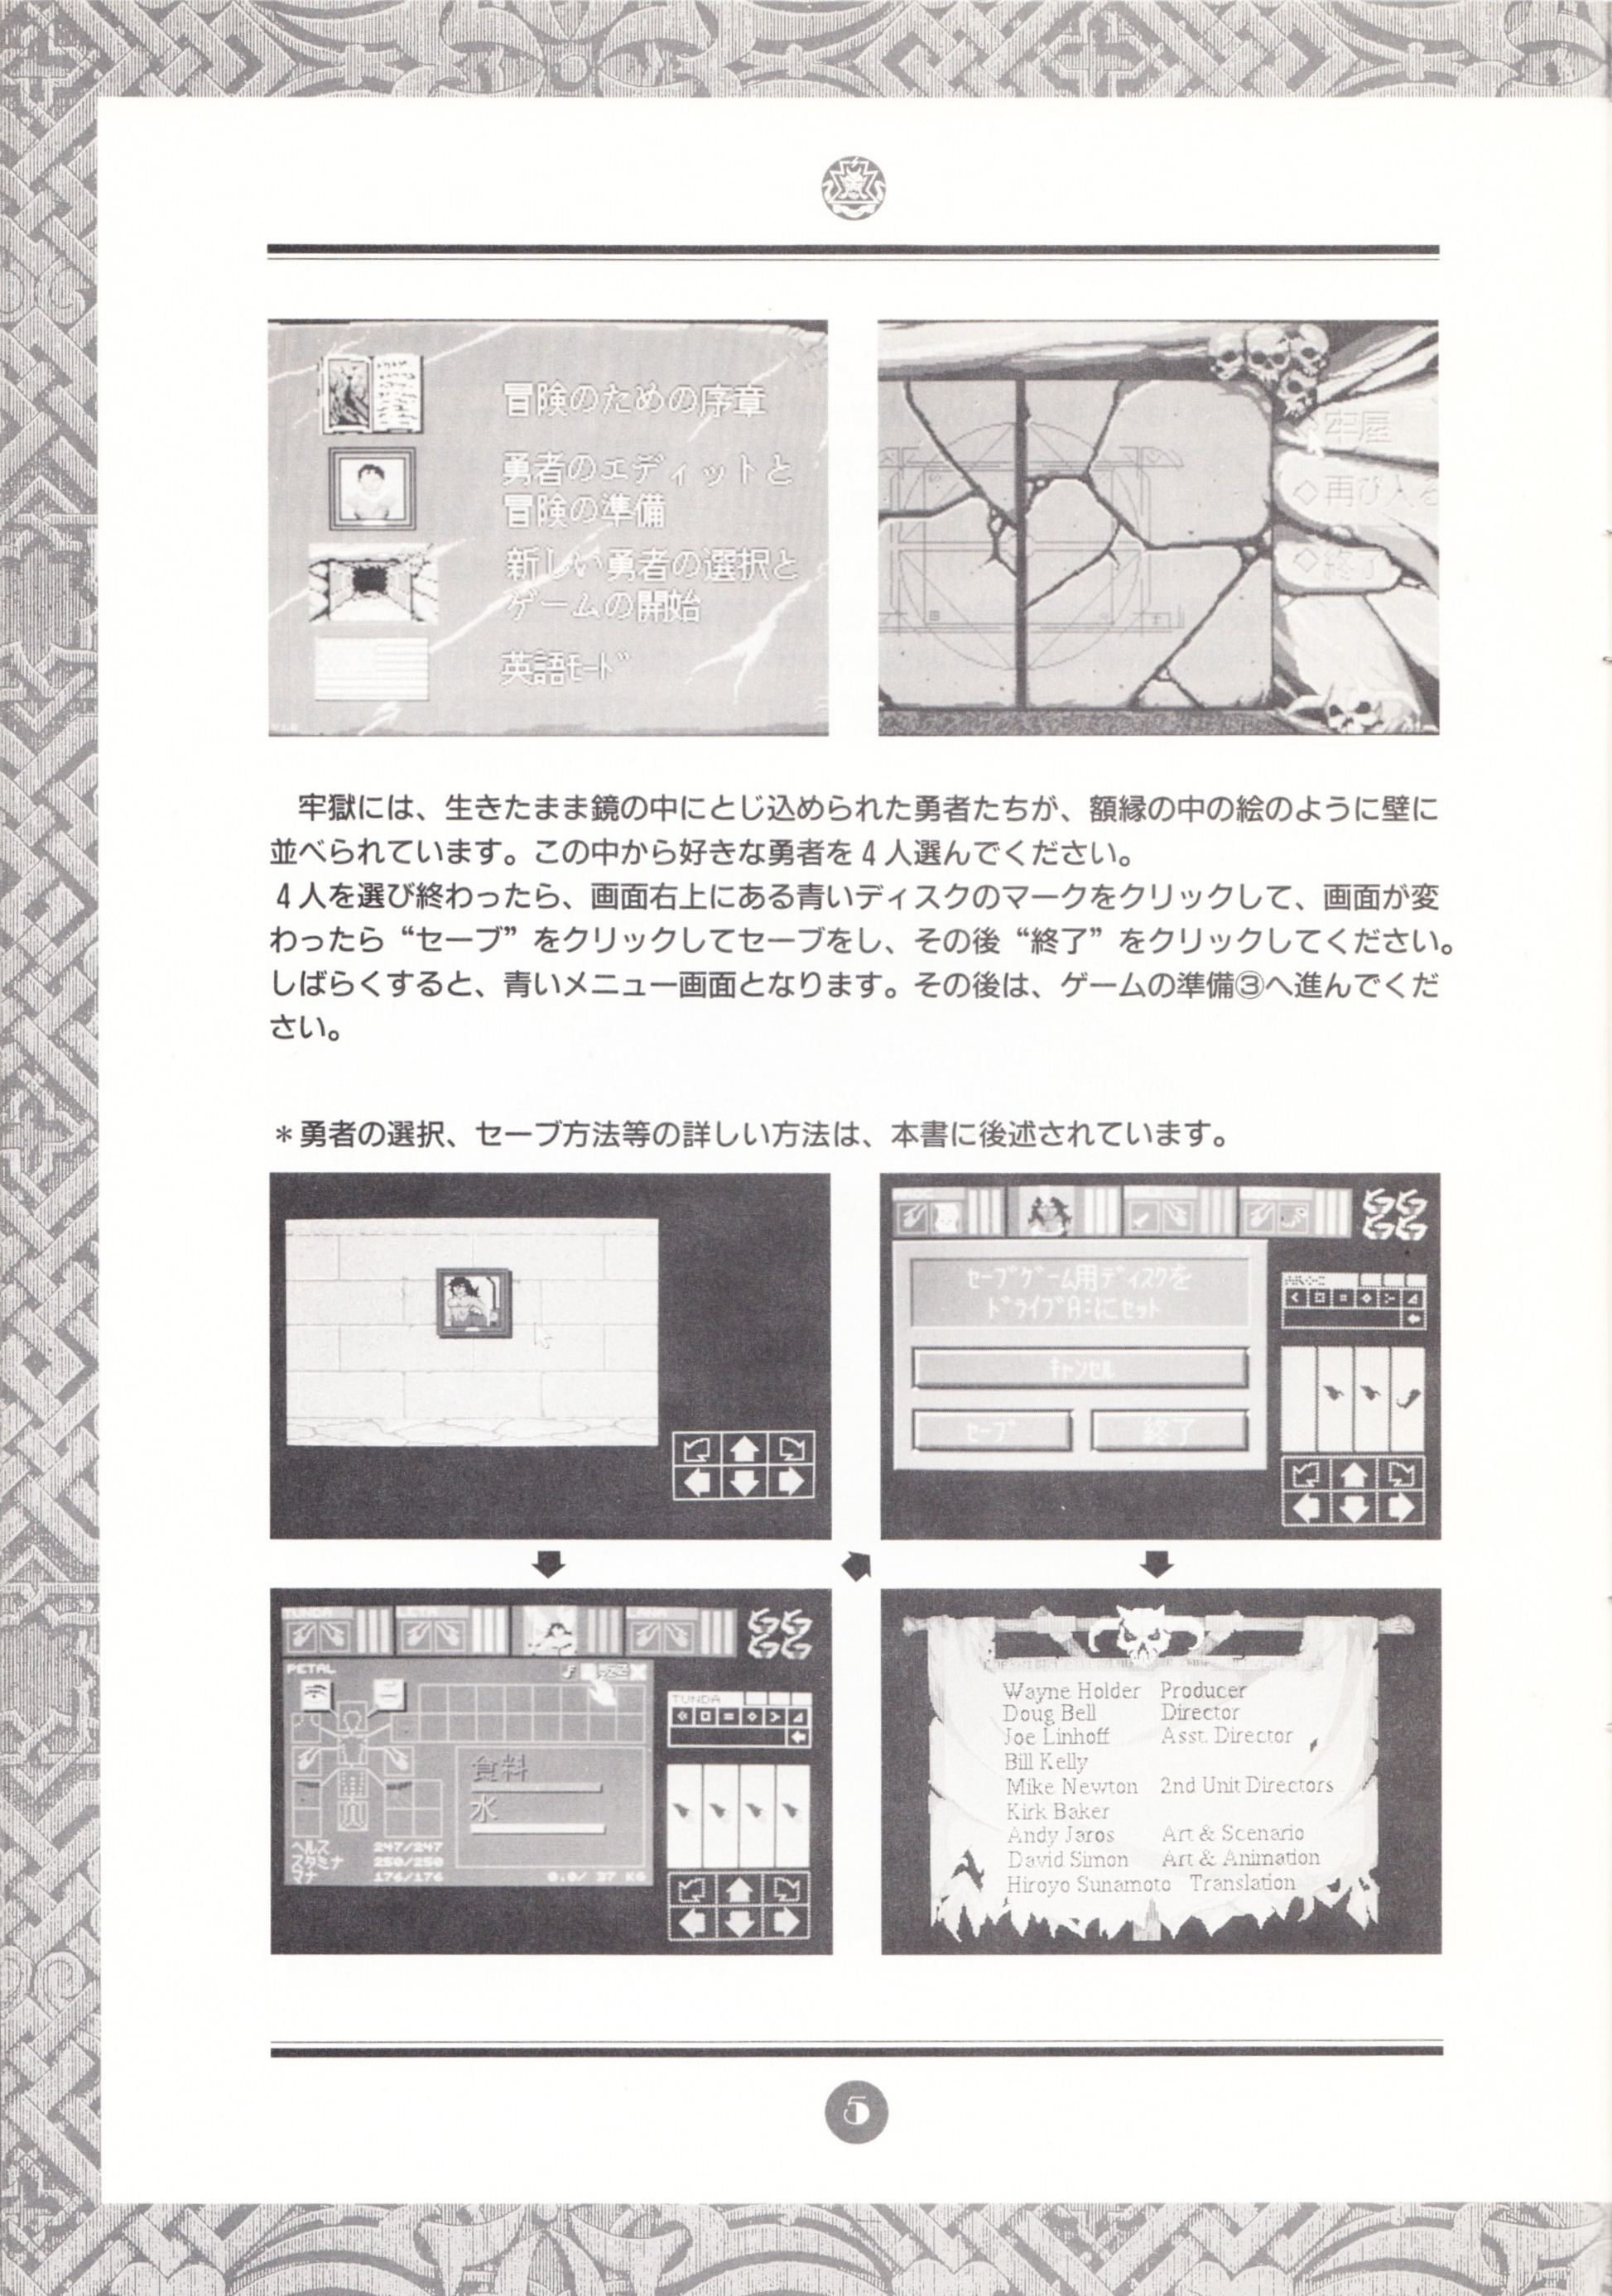 Game - Chaos Strikes Back - JP - FM Towns - An Operation Manual - Page 008 - Scan